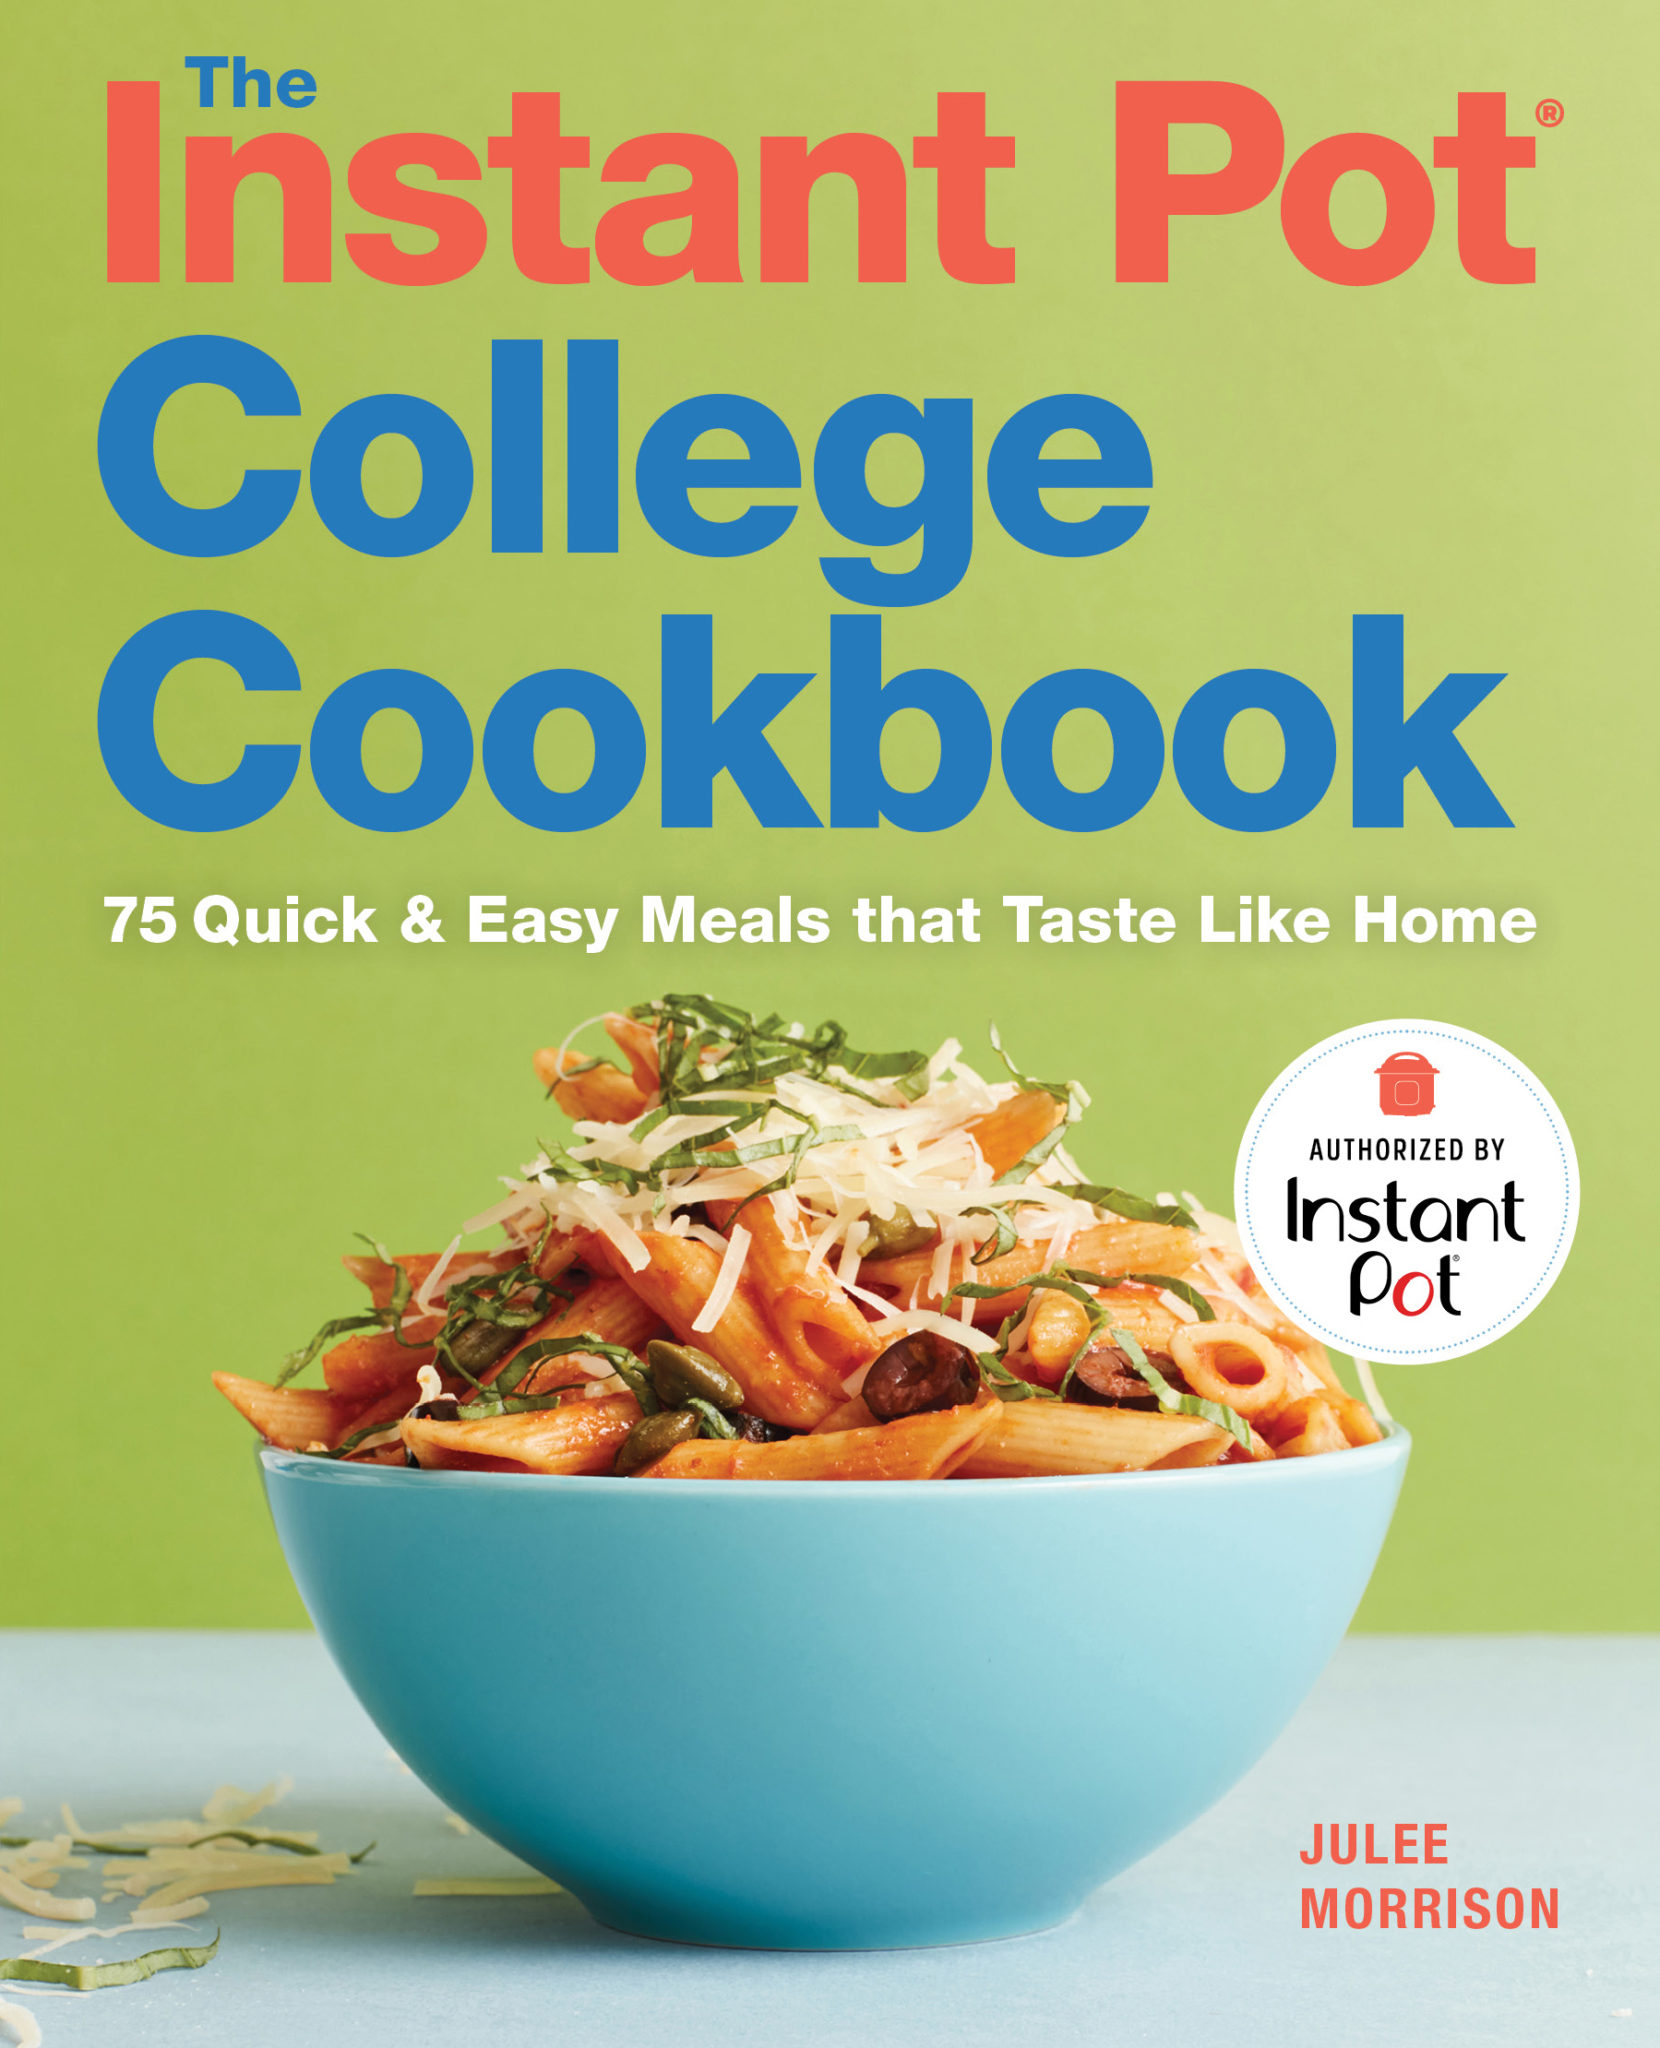 The Instant Pot College Cookbook by Julee Morrison